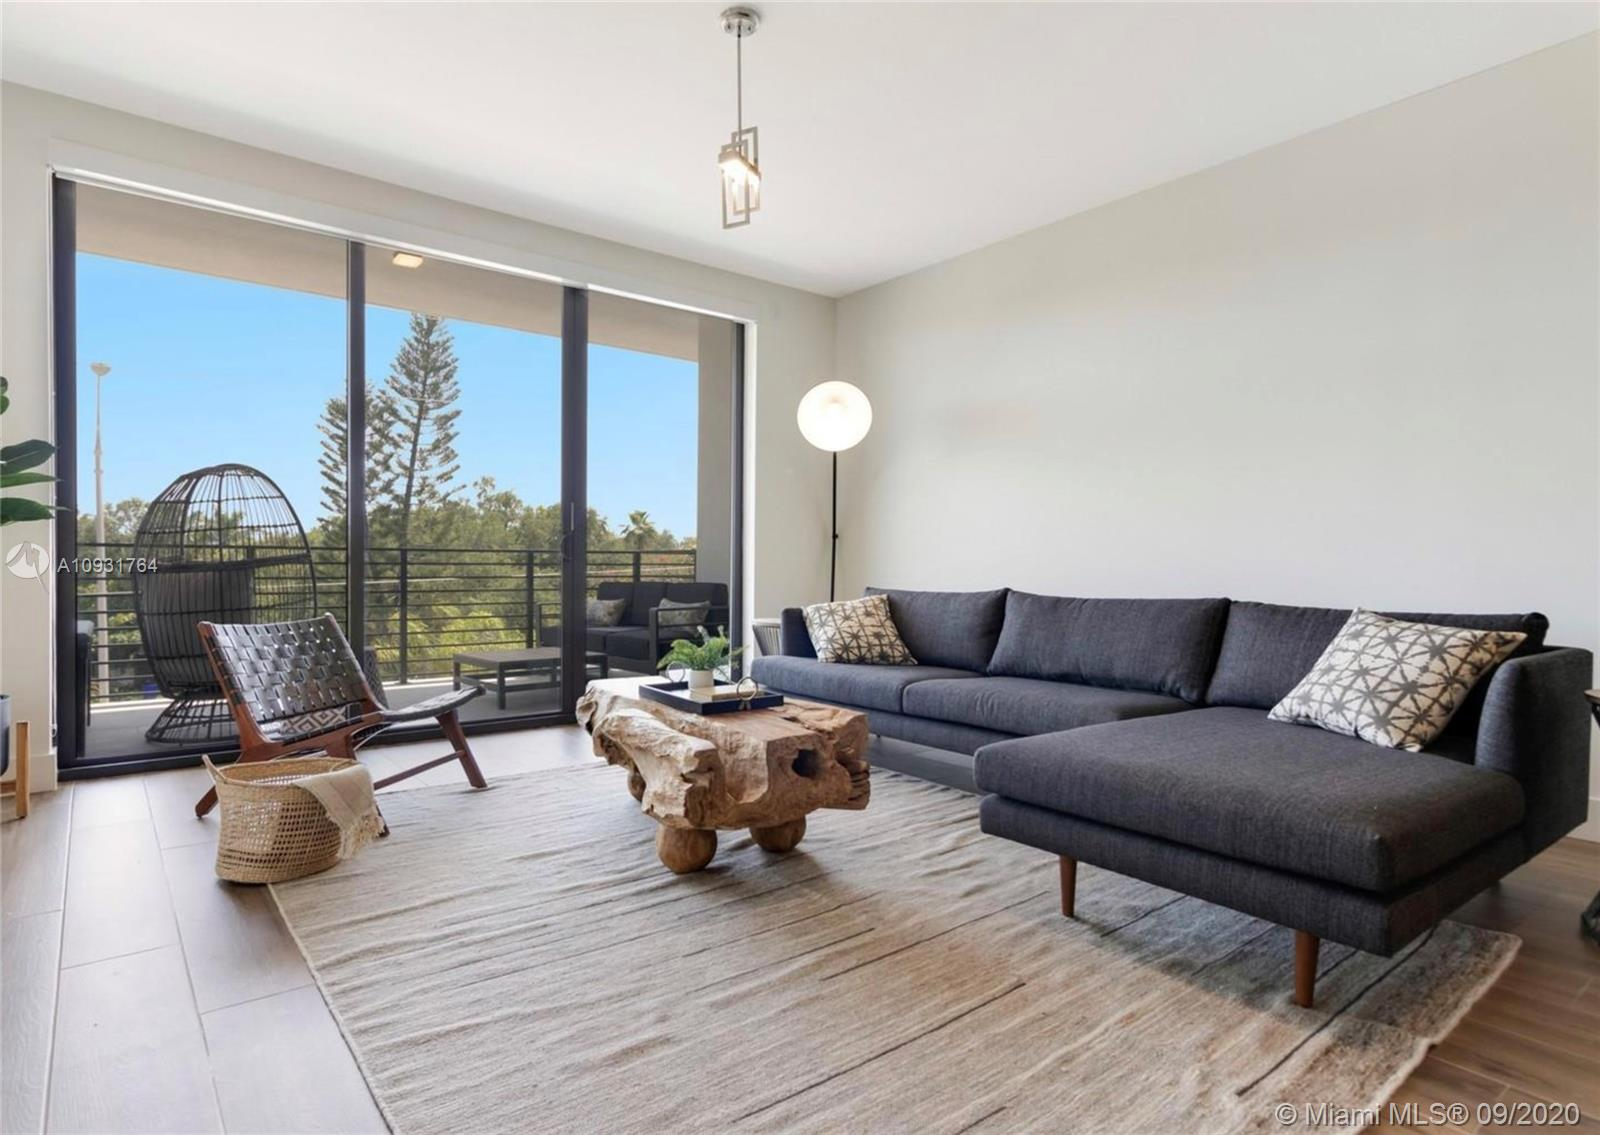 3265  Bird Ave #202 For Sale A10931764, FL